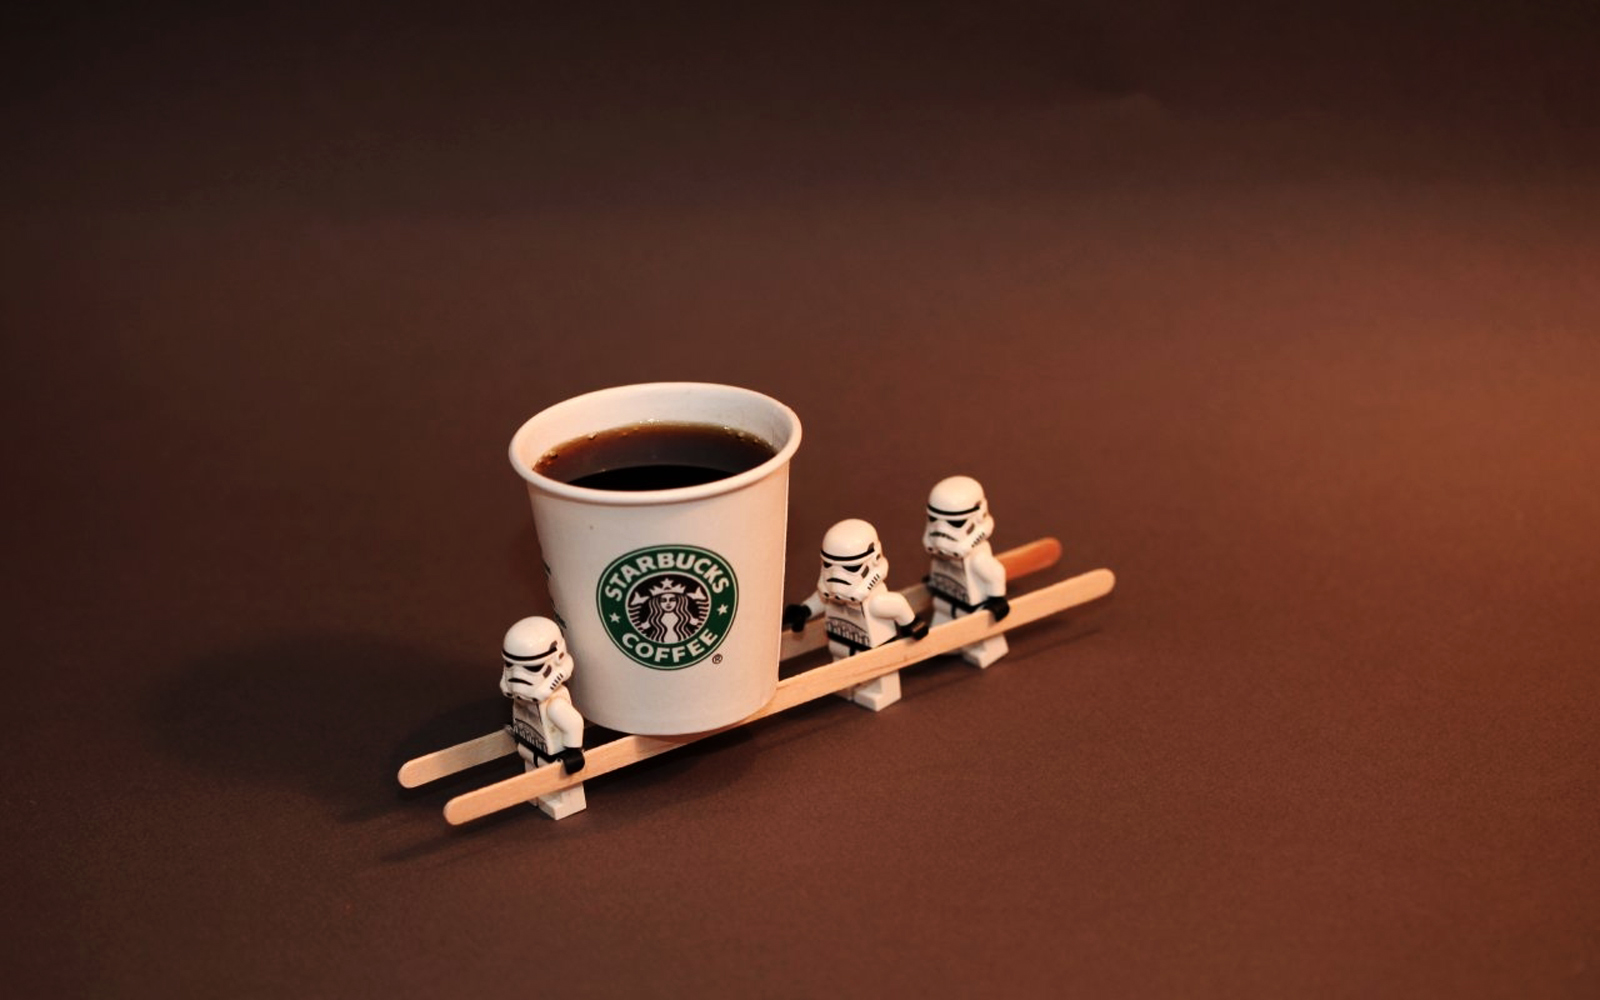 http://1.bp.blogspot.com/-j5QjMPwu6Hg/T4qIY0TWnmI/AAAAAAAABVQ/Or-0SOdP1S0/s1600/Starbucks_Coffee_Carrying_Lego_Stormtroopers_HD_Wallpaper-Vvallpaper.Net.jpg